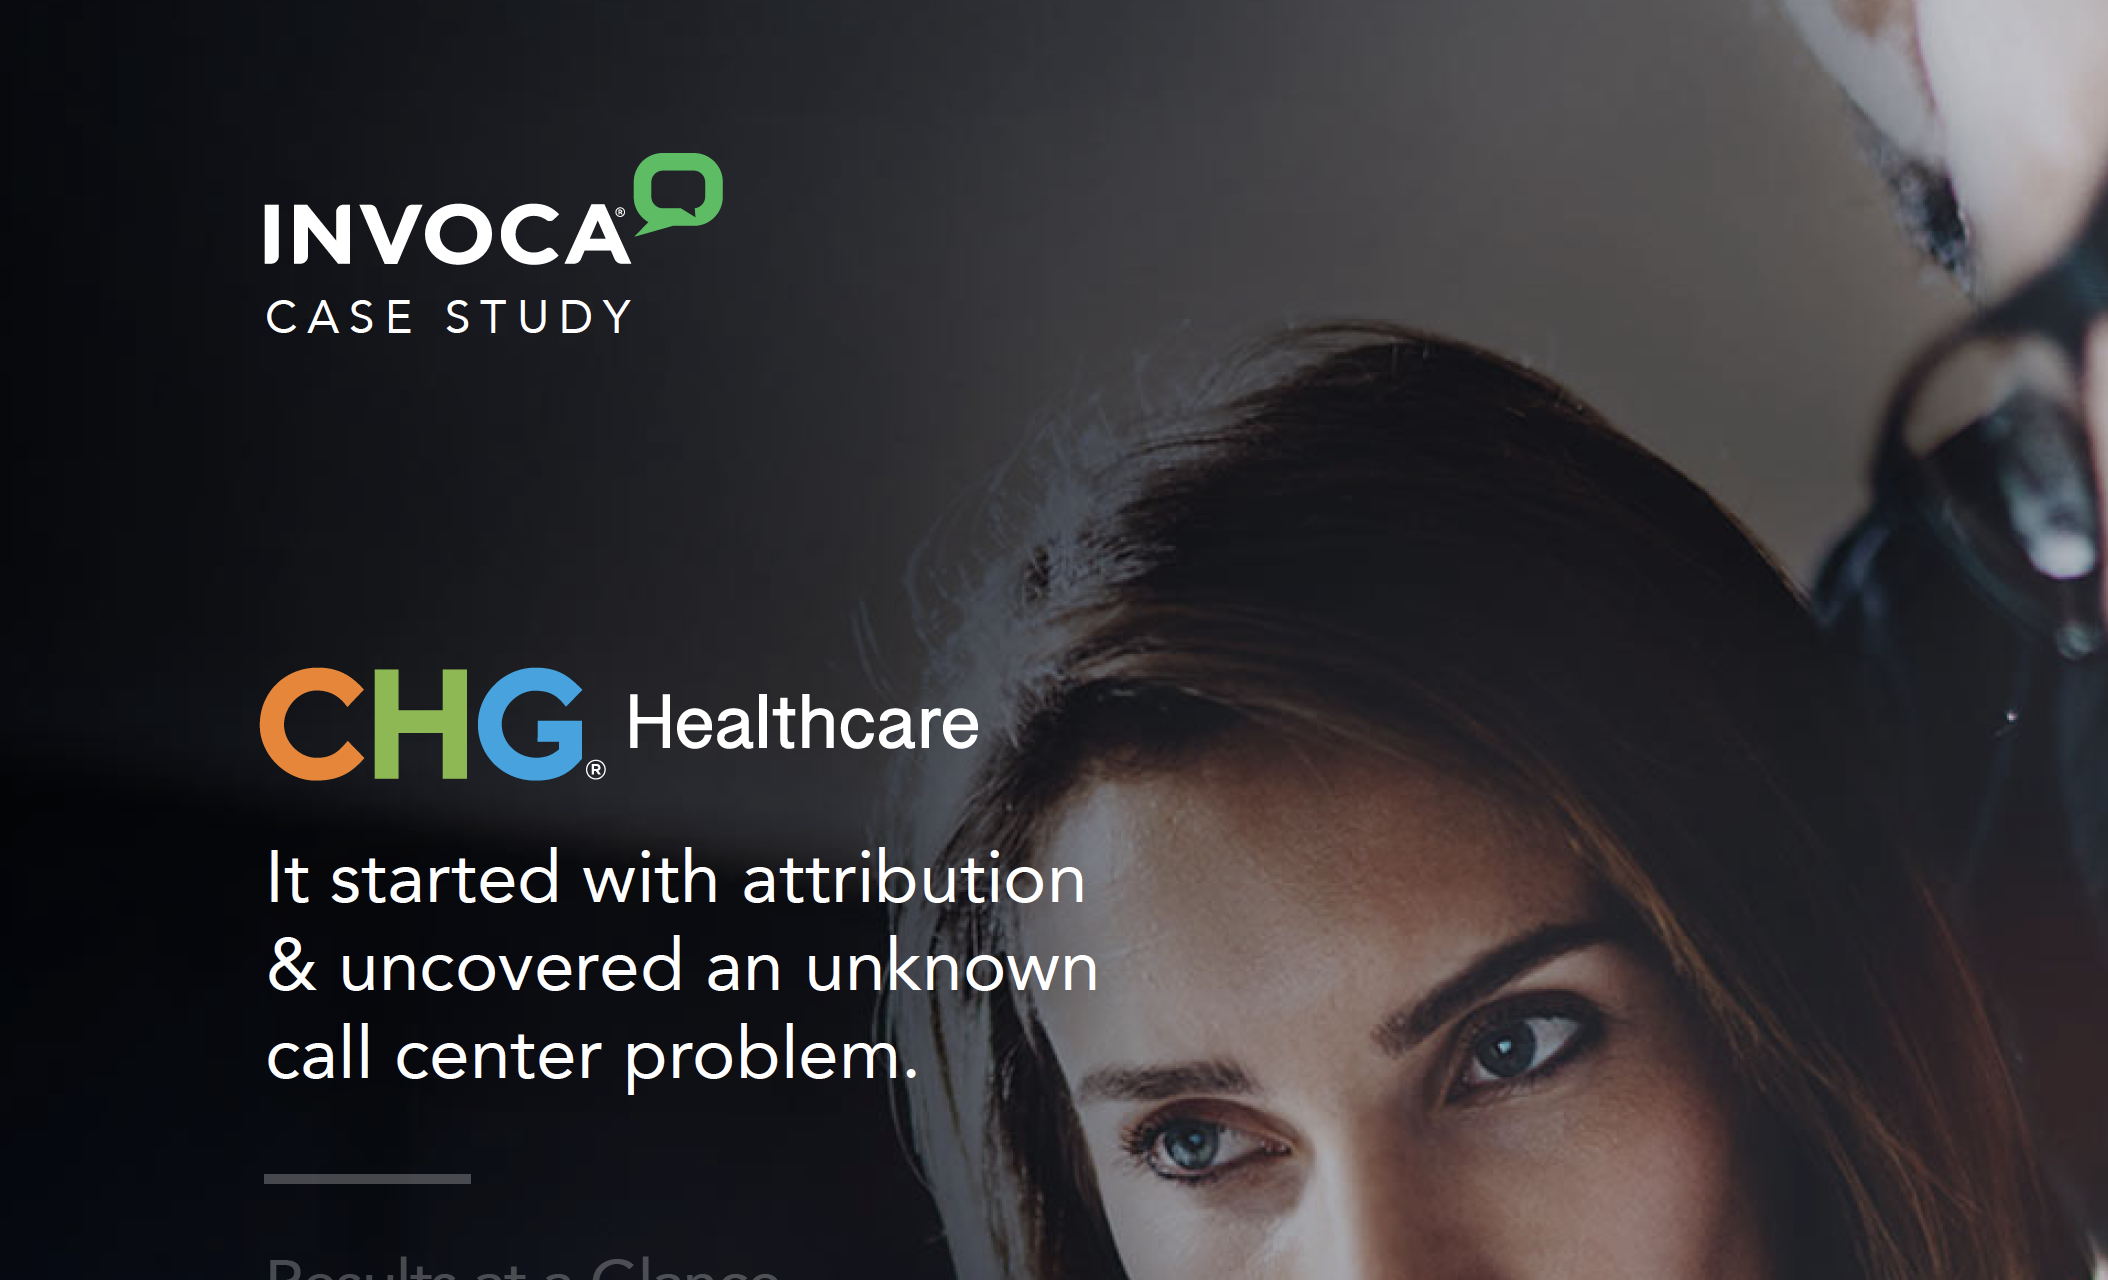 How Invoca Helped CHG Healthcare Improve Attribution & Uncover Call Center Issues